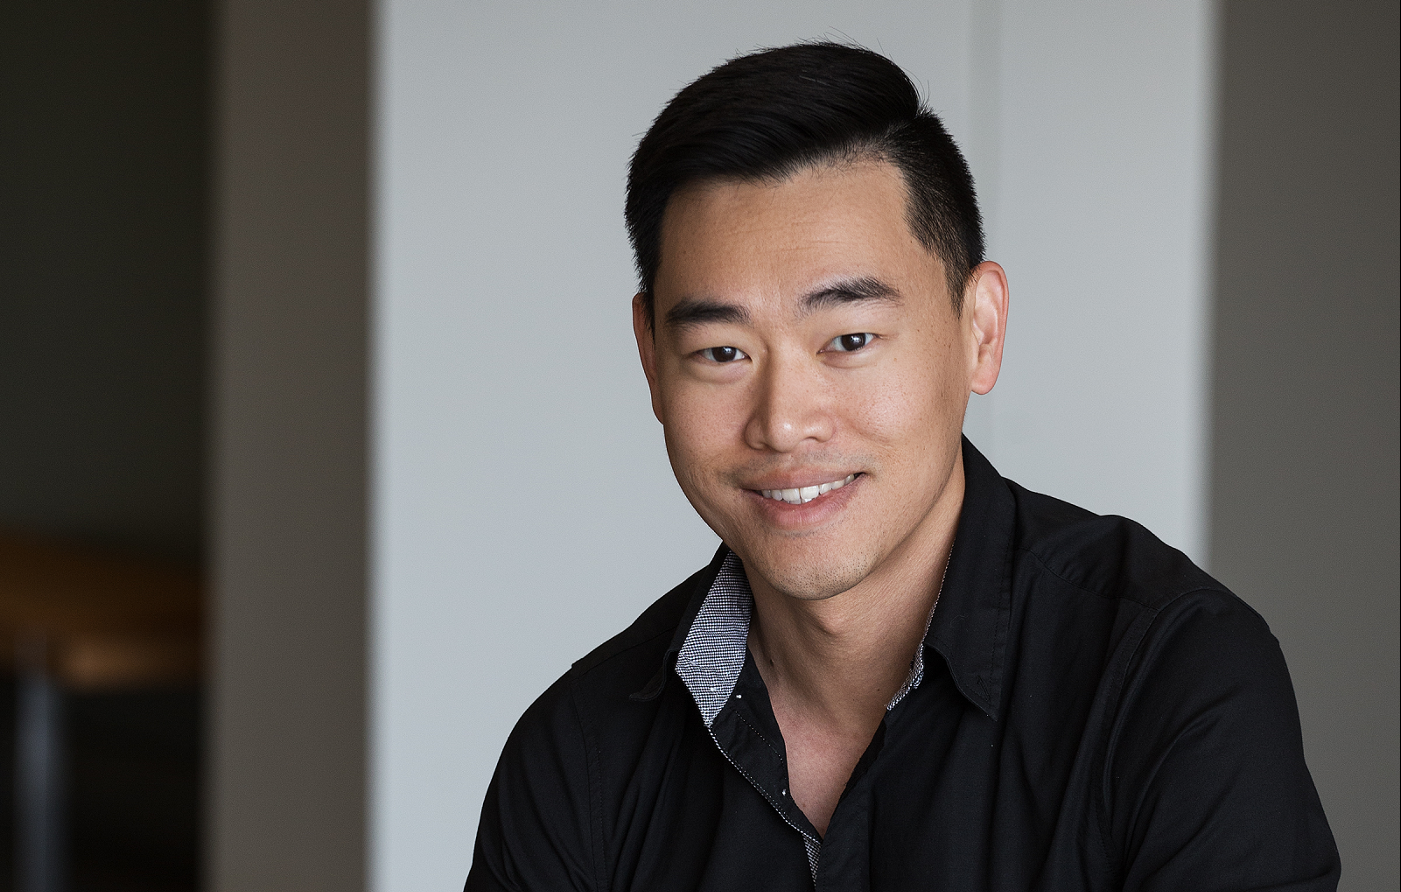 Dr Tim Shu, founder & CEO of VETCBD, talks about how to take a company from good to great